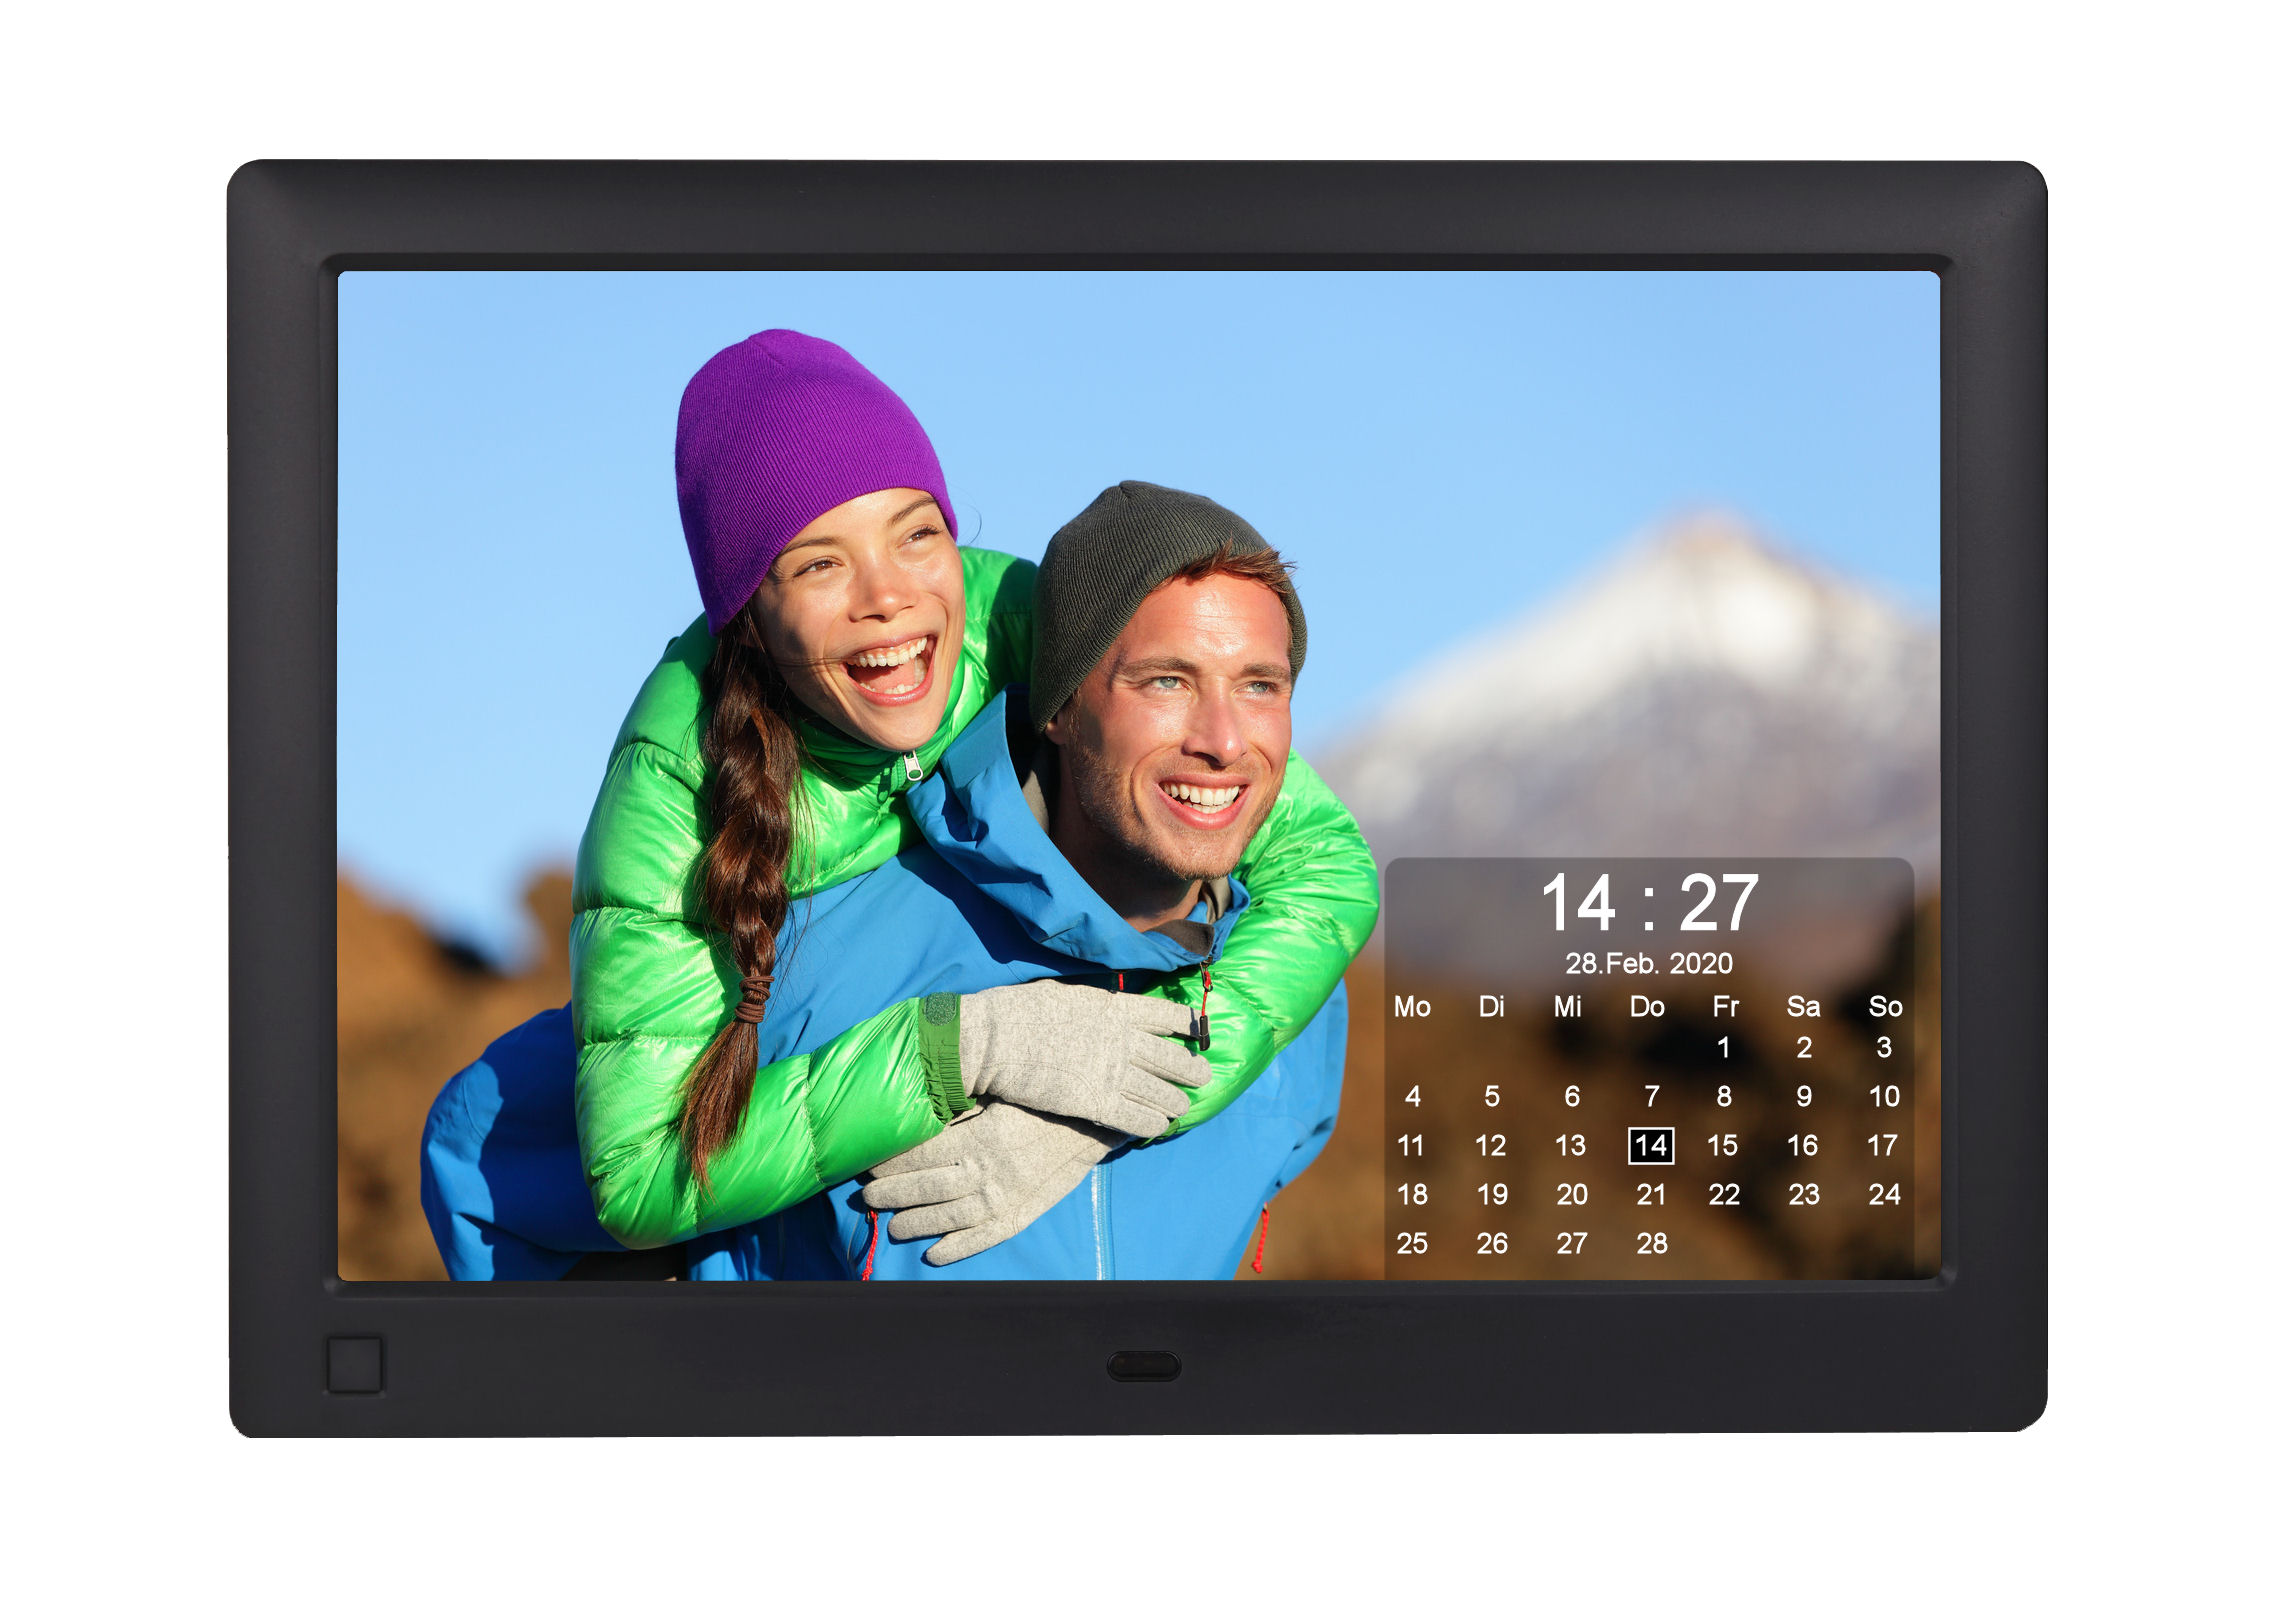 https://www.digitalbilderrahmen.de/out/pictures/master/product/1/cytem_qs10_front_callendar_01.jpg